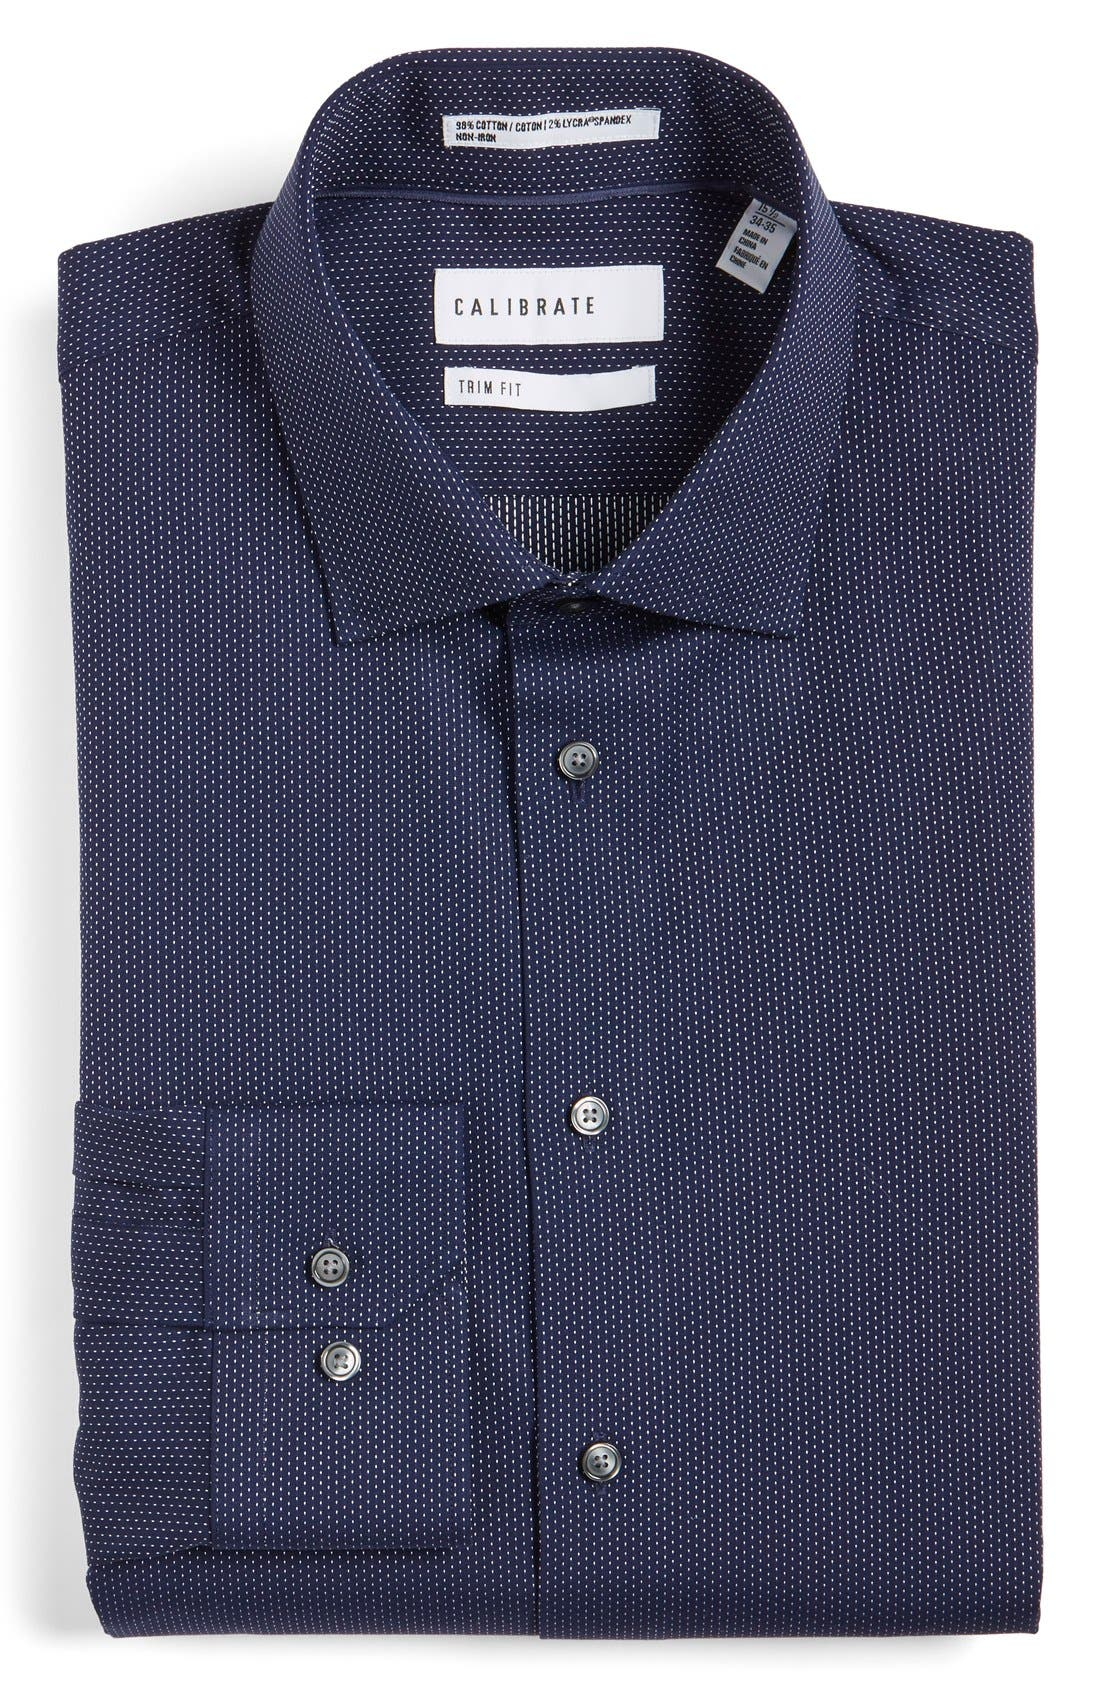 Trim Fit Non-Iron Microdot Dress Shirt,                         Main,                         color, Navy Peacoat